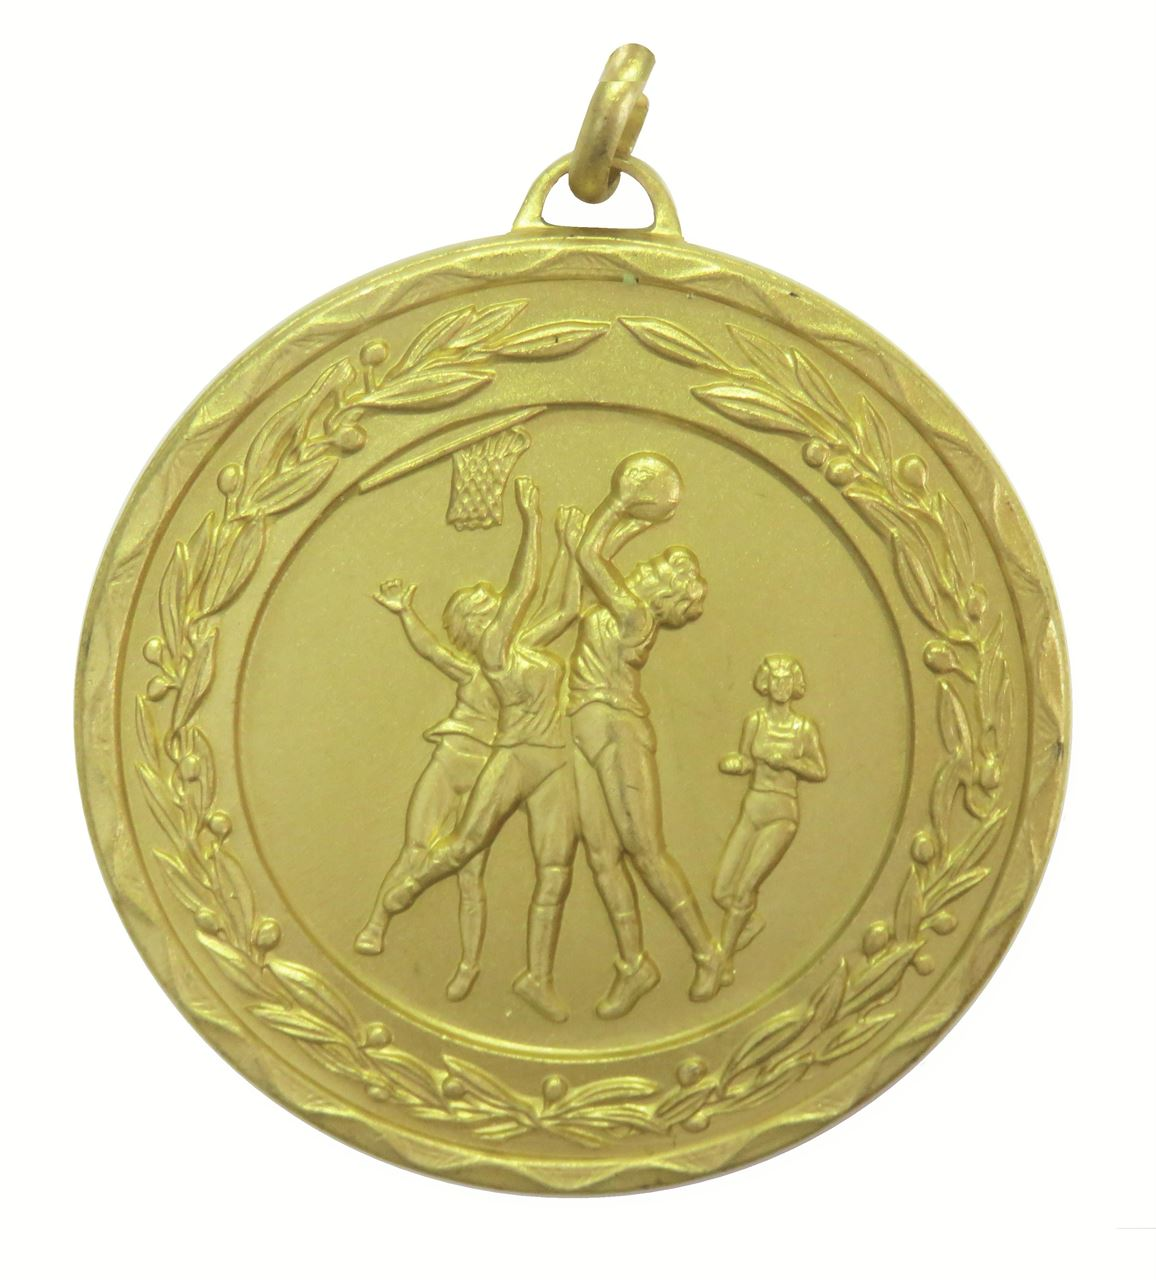 Gold Laurel Economy Netball Medal (size: 50mm) - 9769E